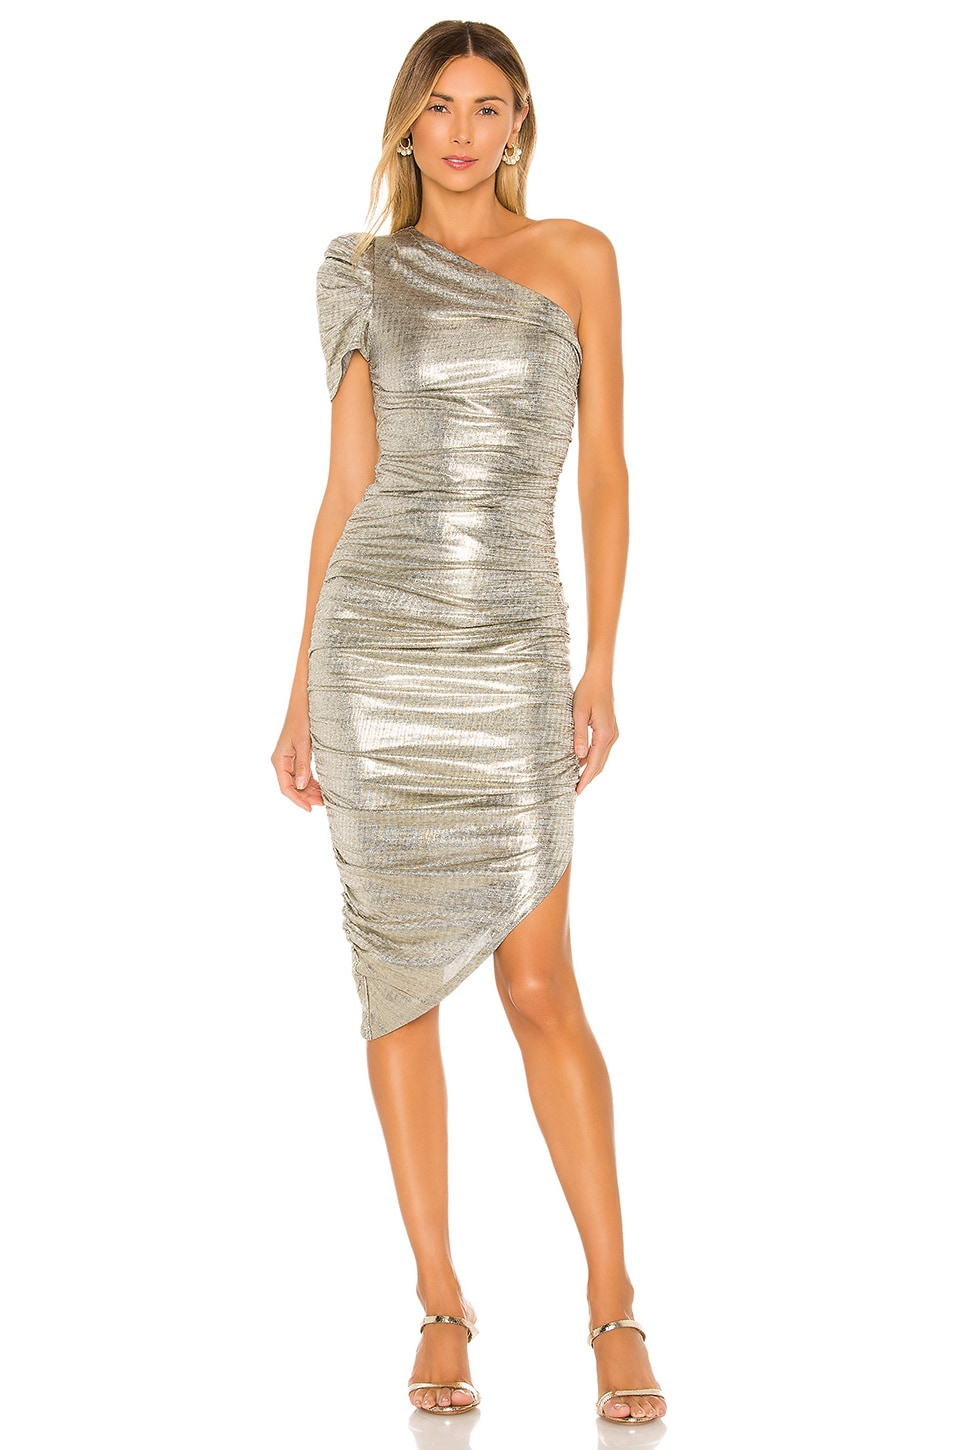 House of Harlow 1960 x REVOLVE Kalina Midi Dress in Pewter